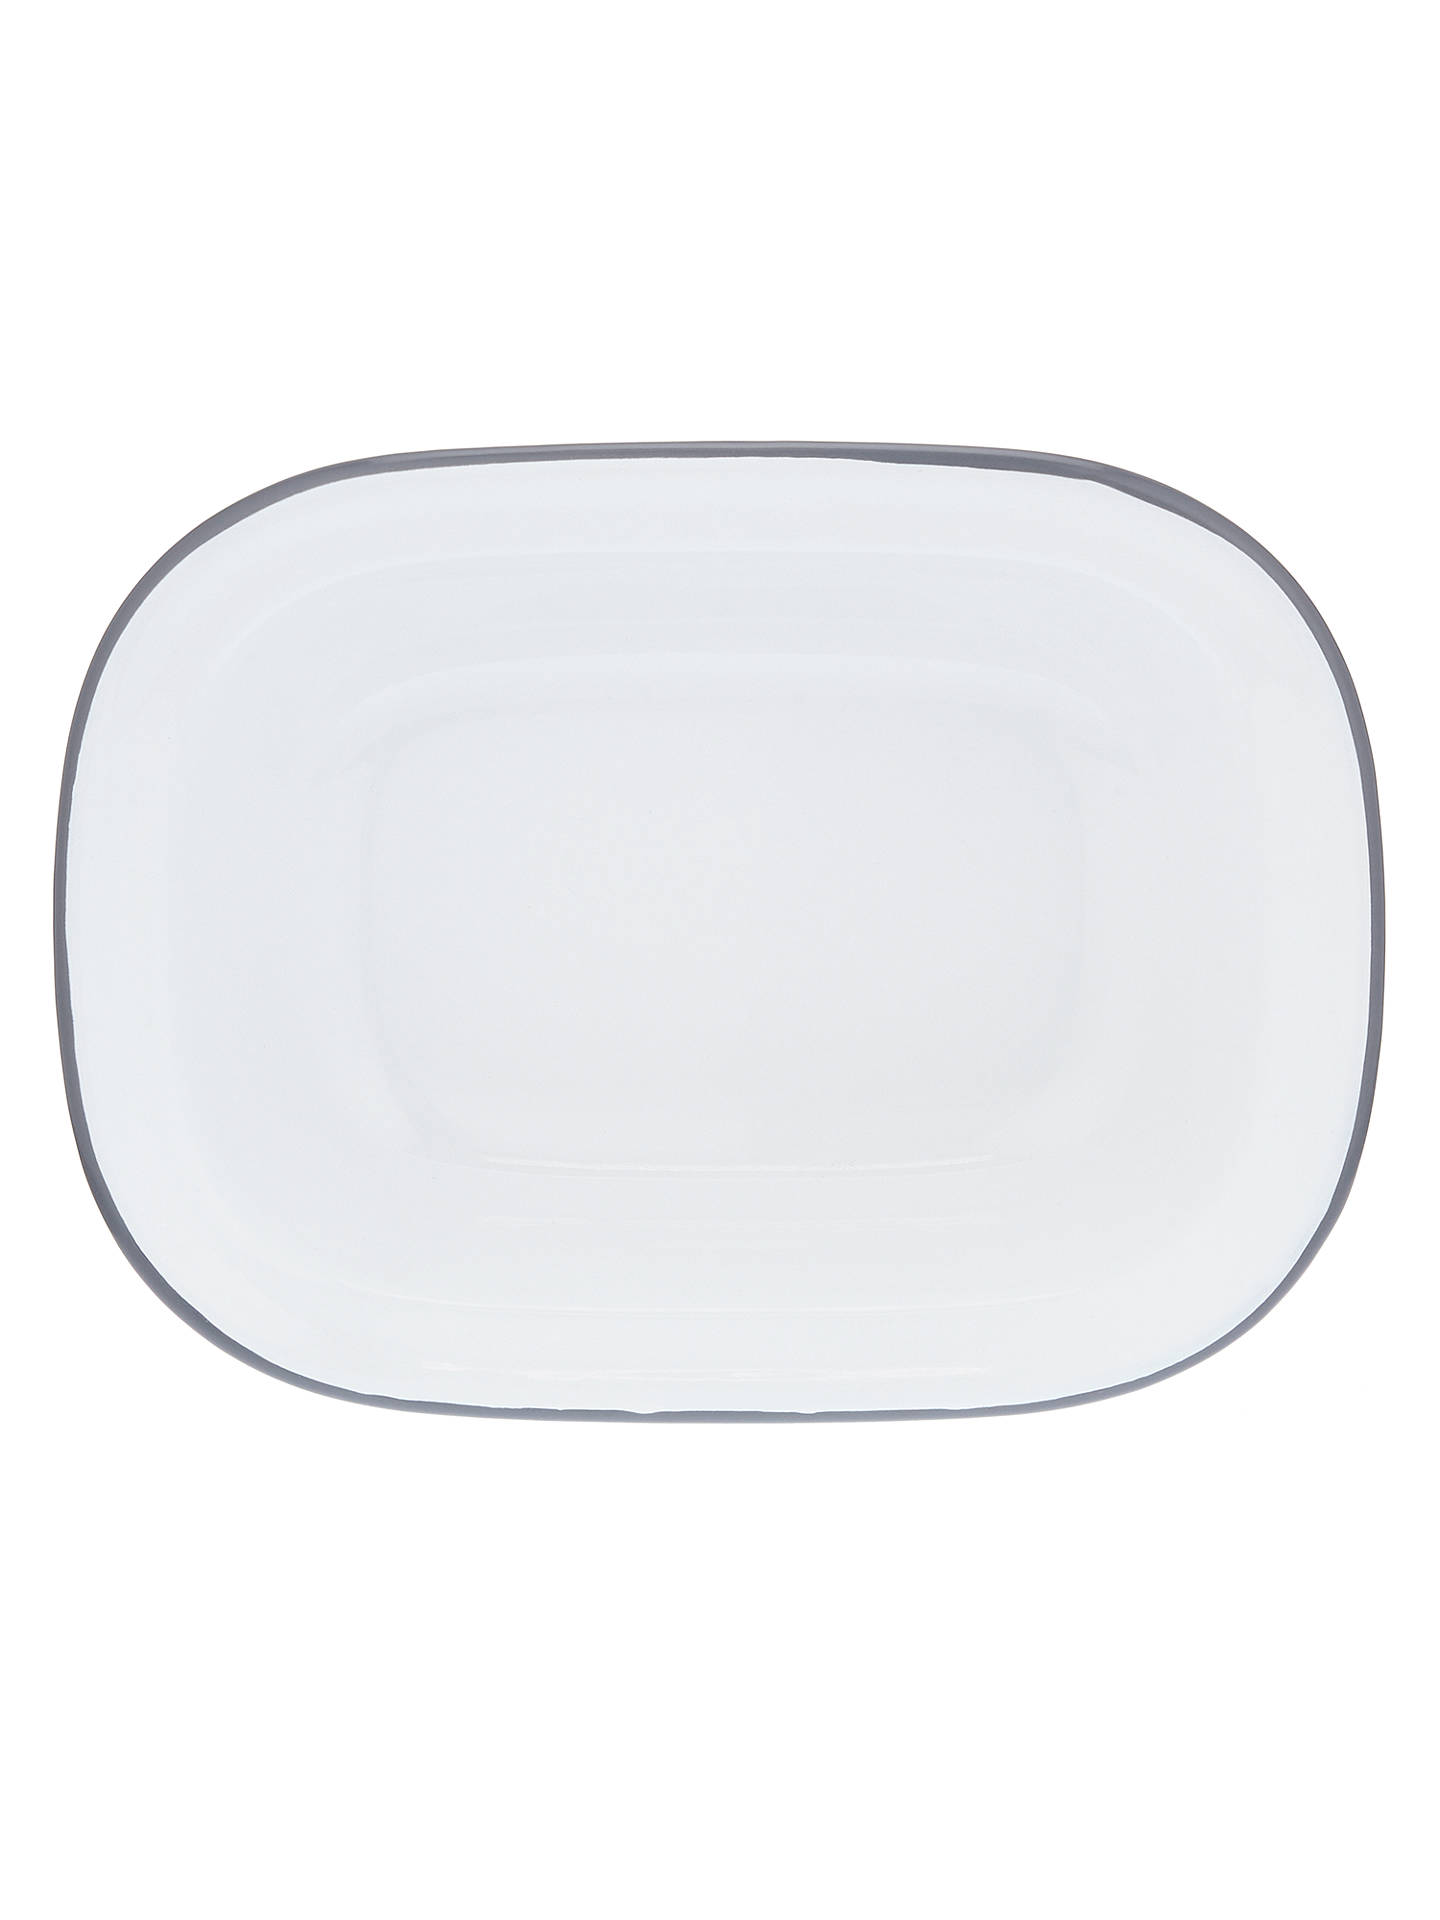 Buy John Lewis & Partners Enamel Oven Pie Dish, White/Grey, 20cm Online at johnlewis.com